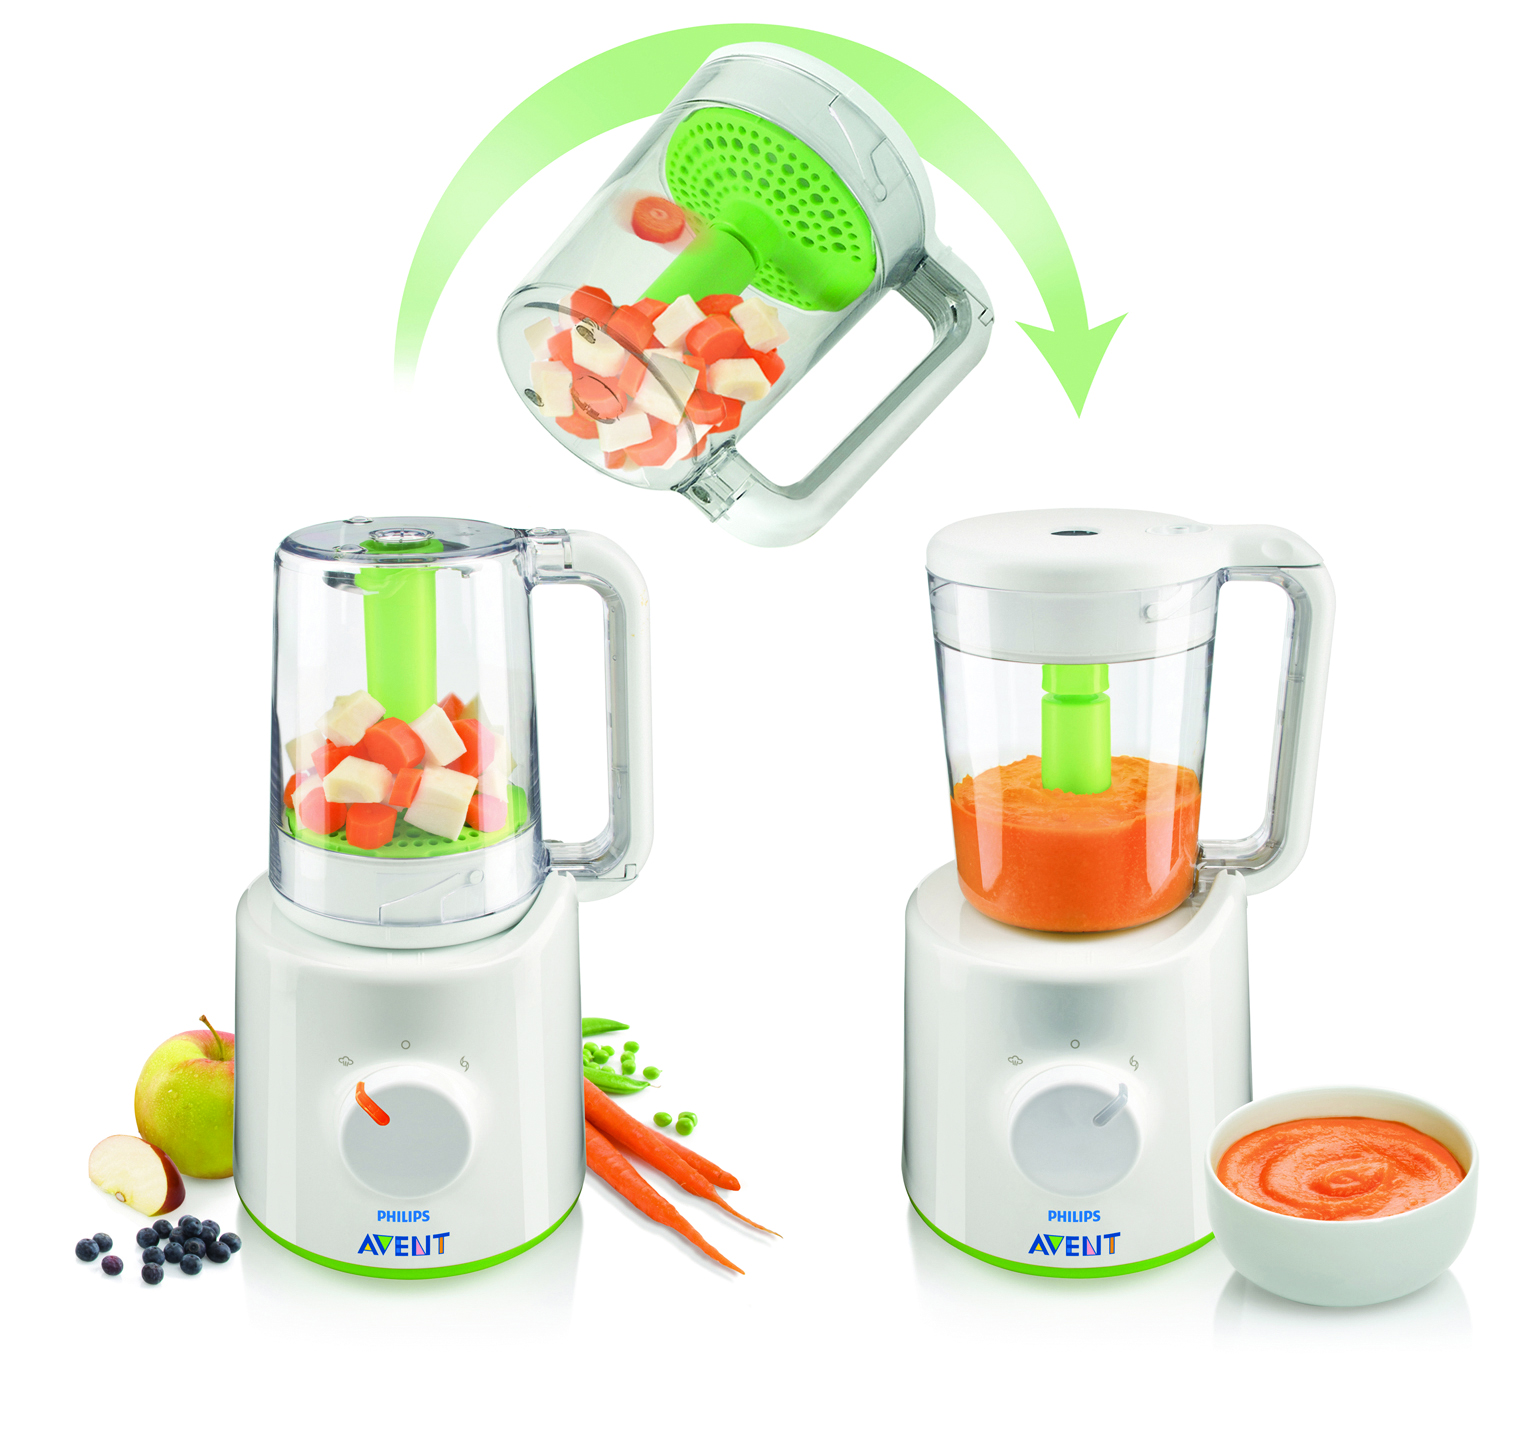 Philips Avent Combined Steamer And Blender Babyroad